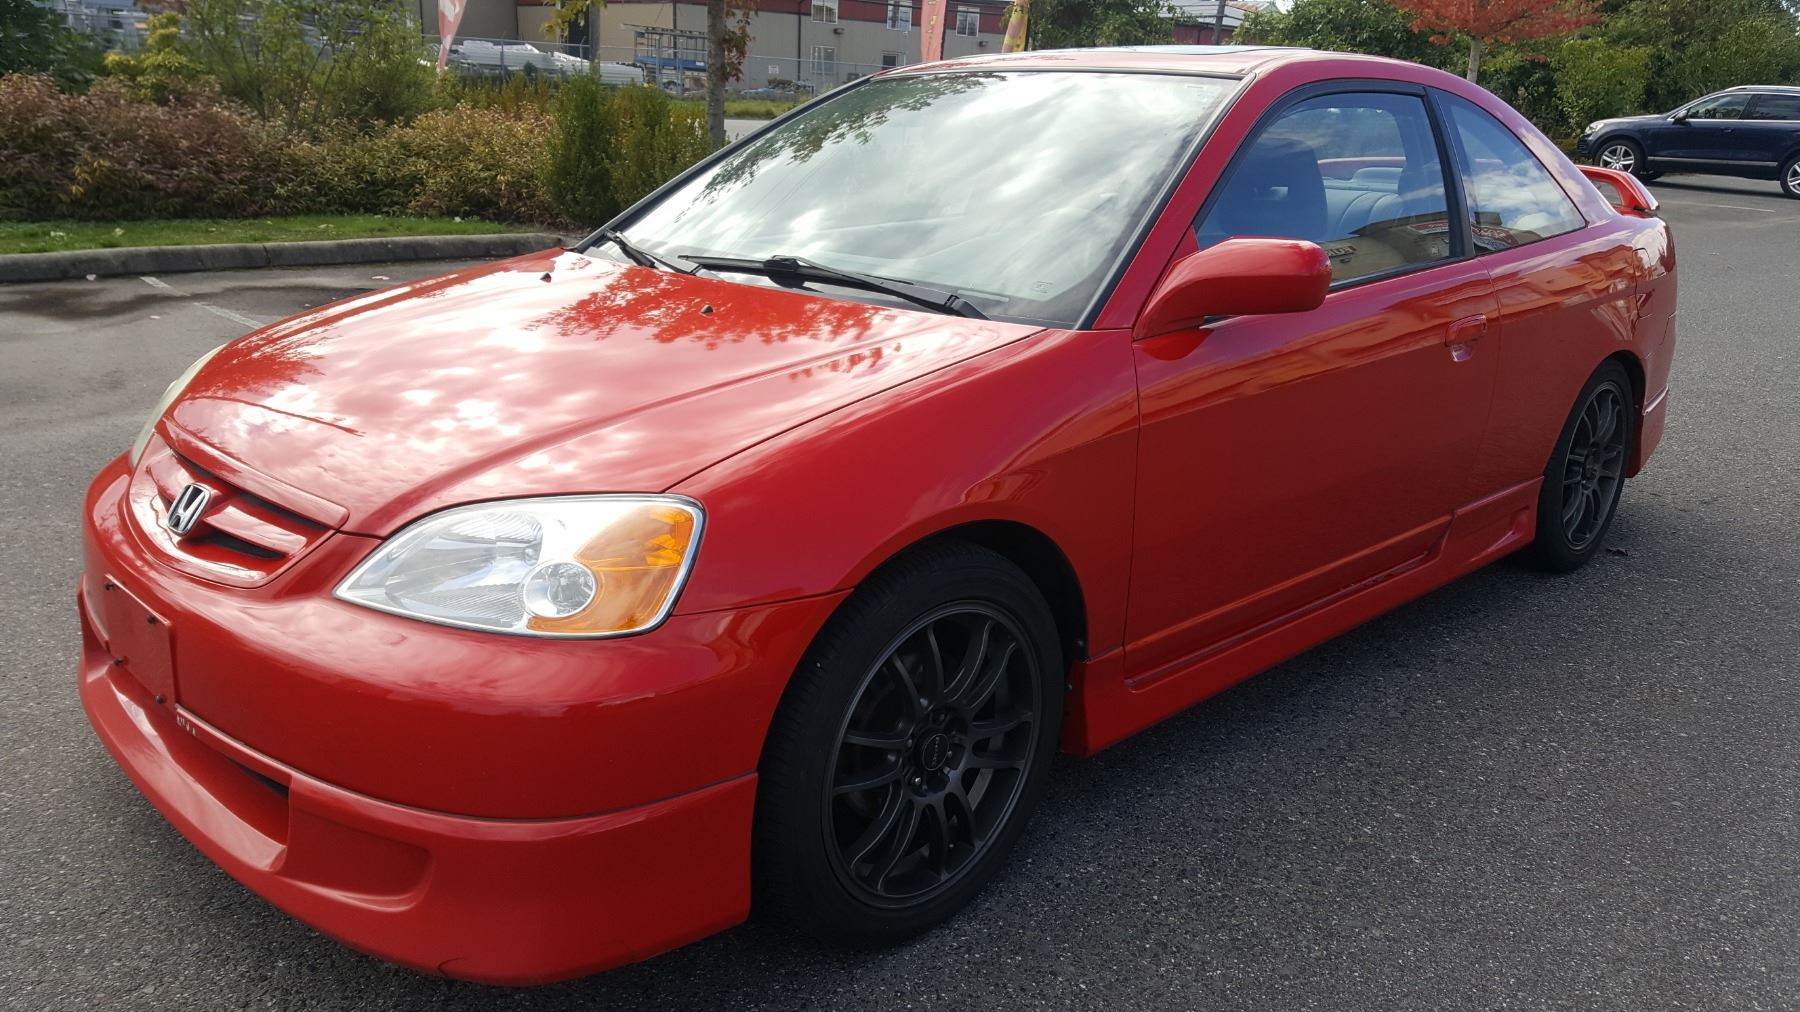 2003 Honda Civic Si 2 Door Coupe 265937km With Key And Registration